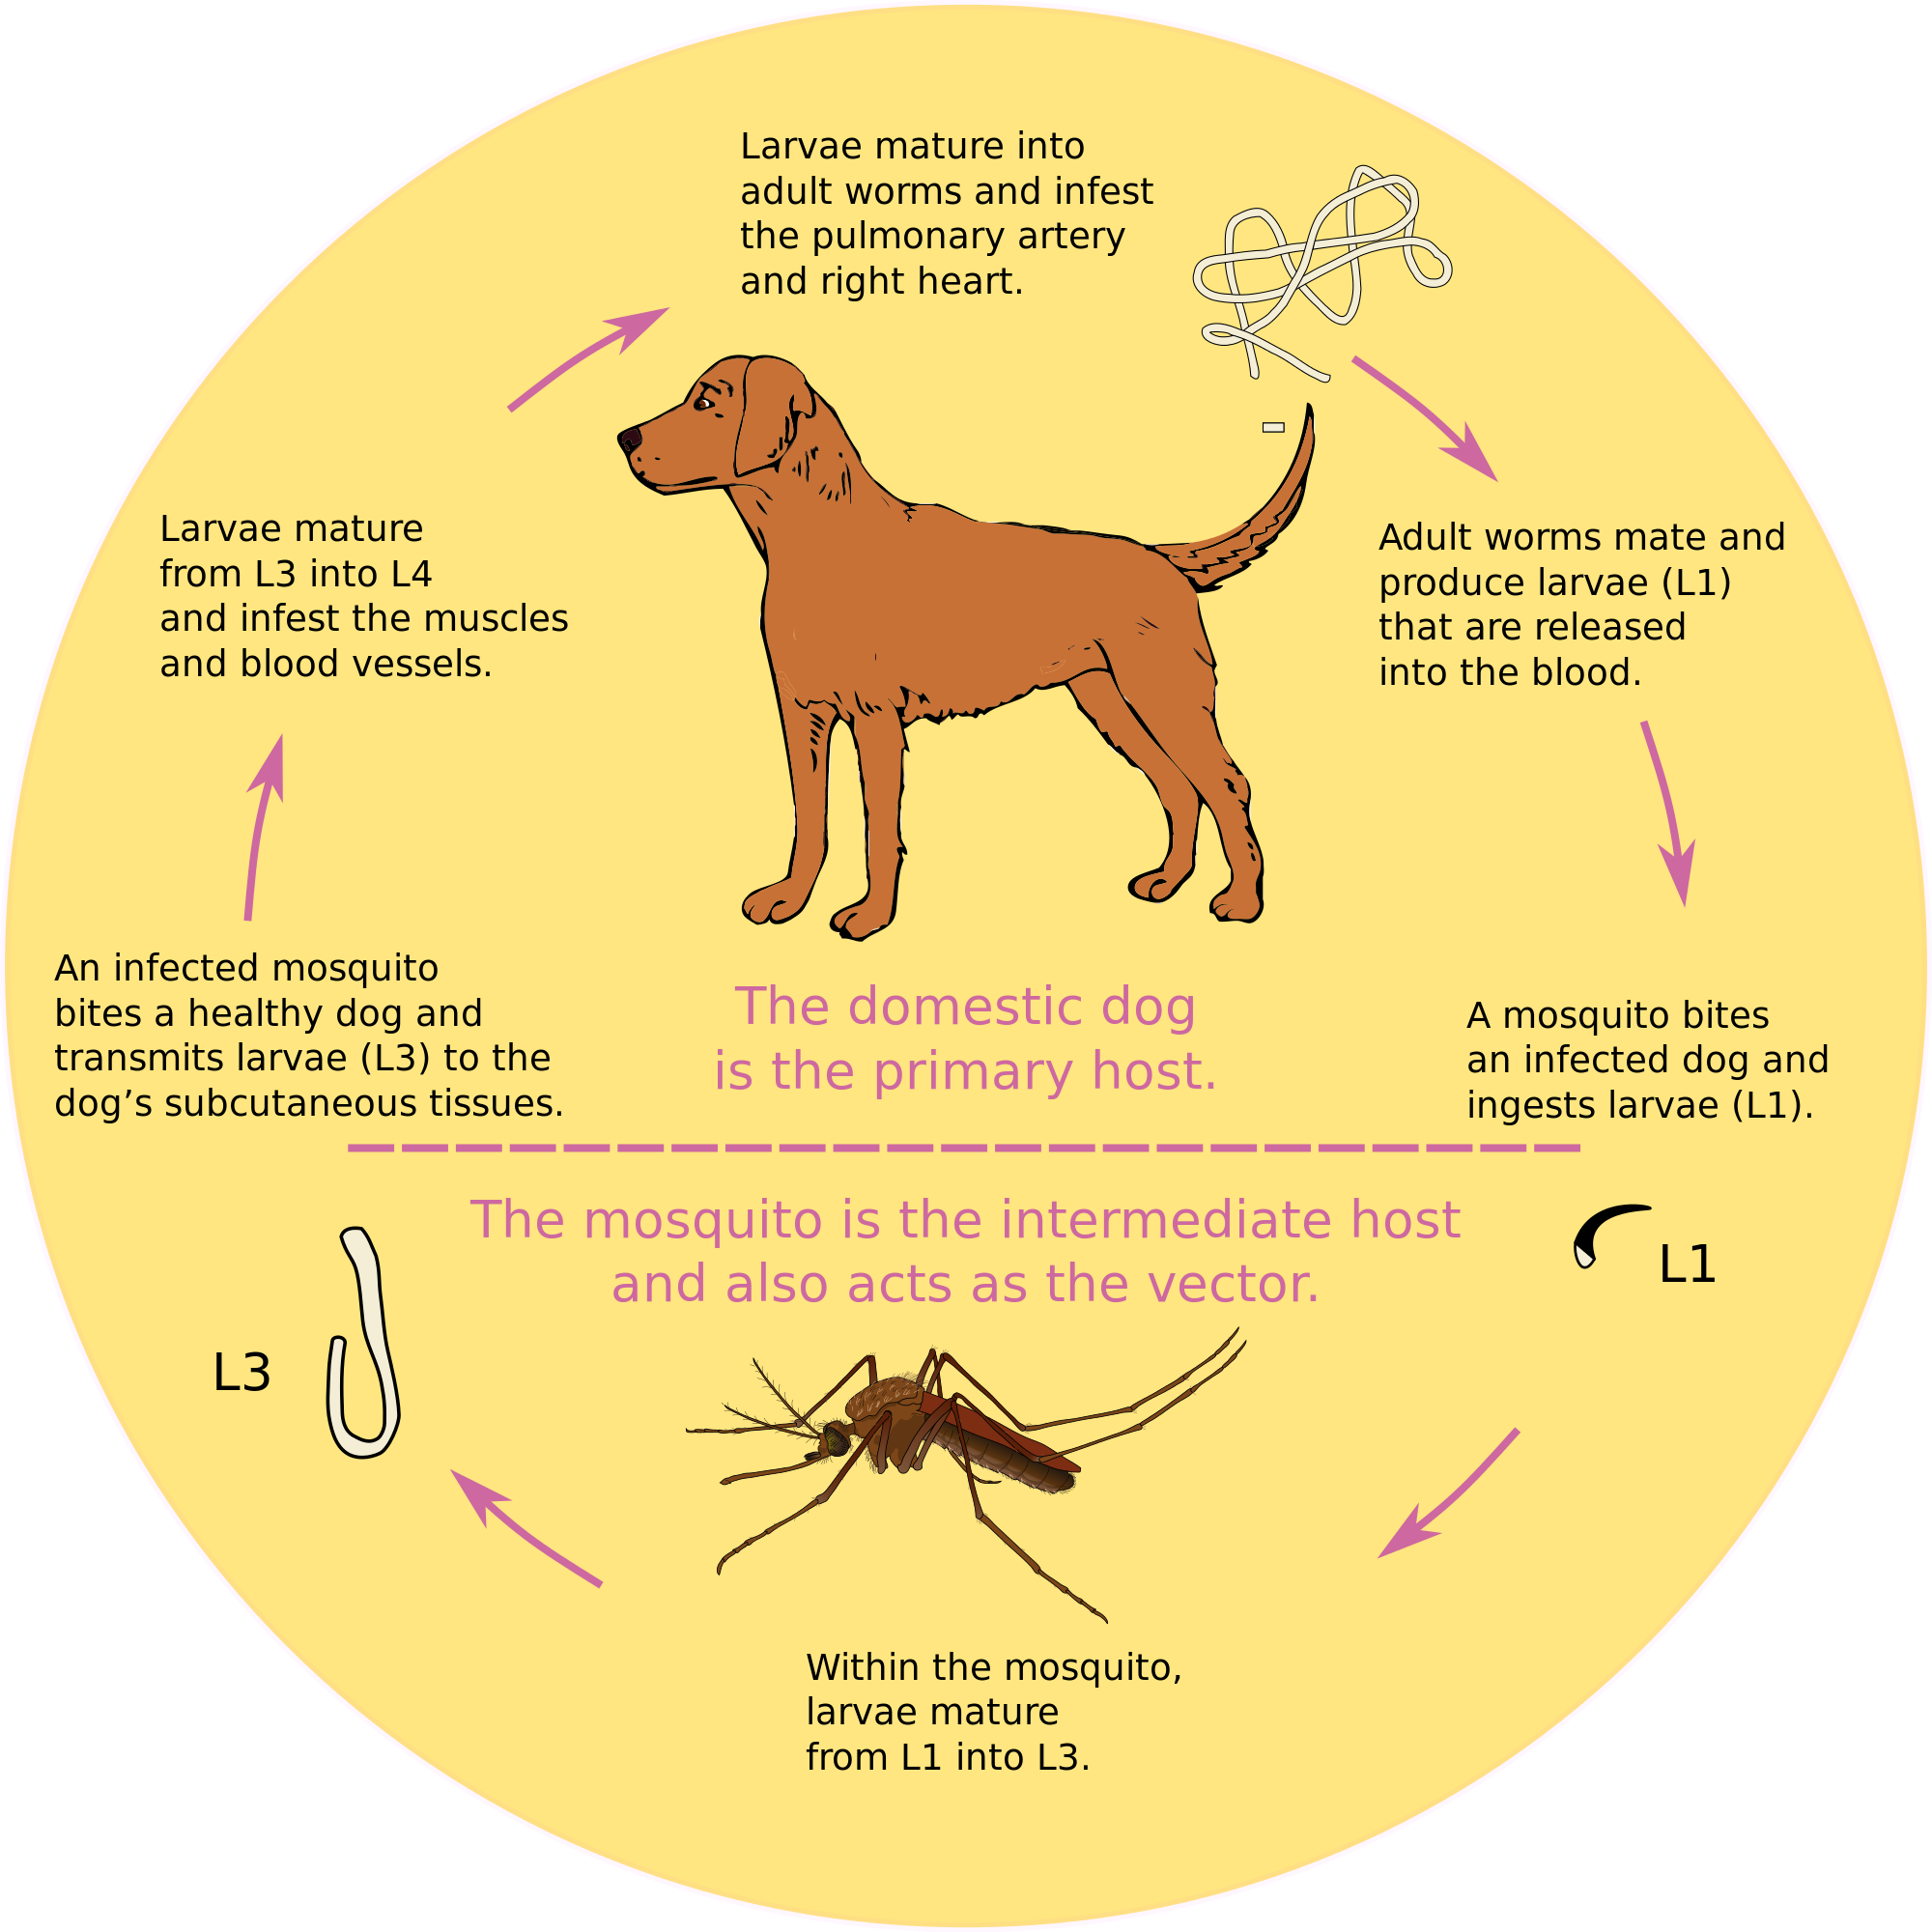 Vector mosquitoes wikipedia. Dirofilaria immitis course of